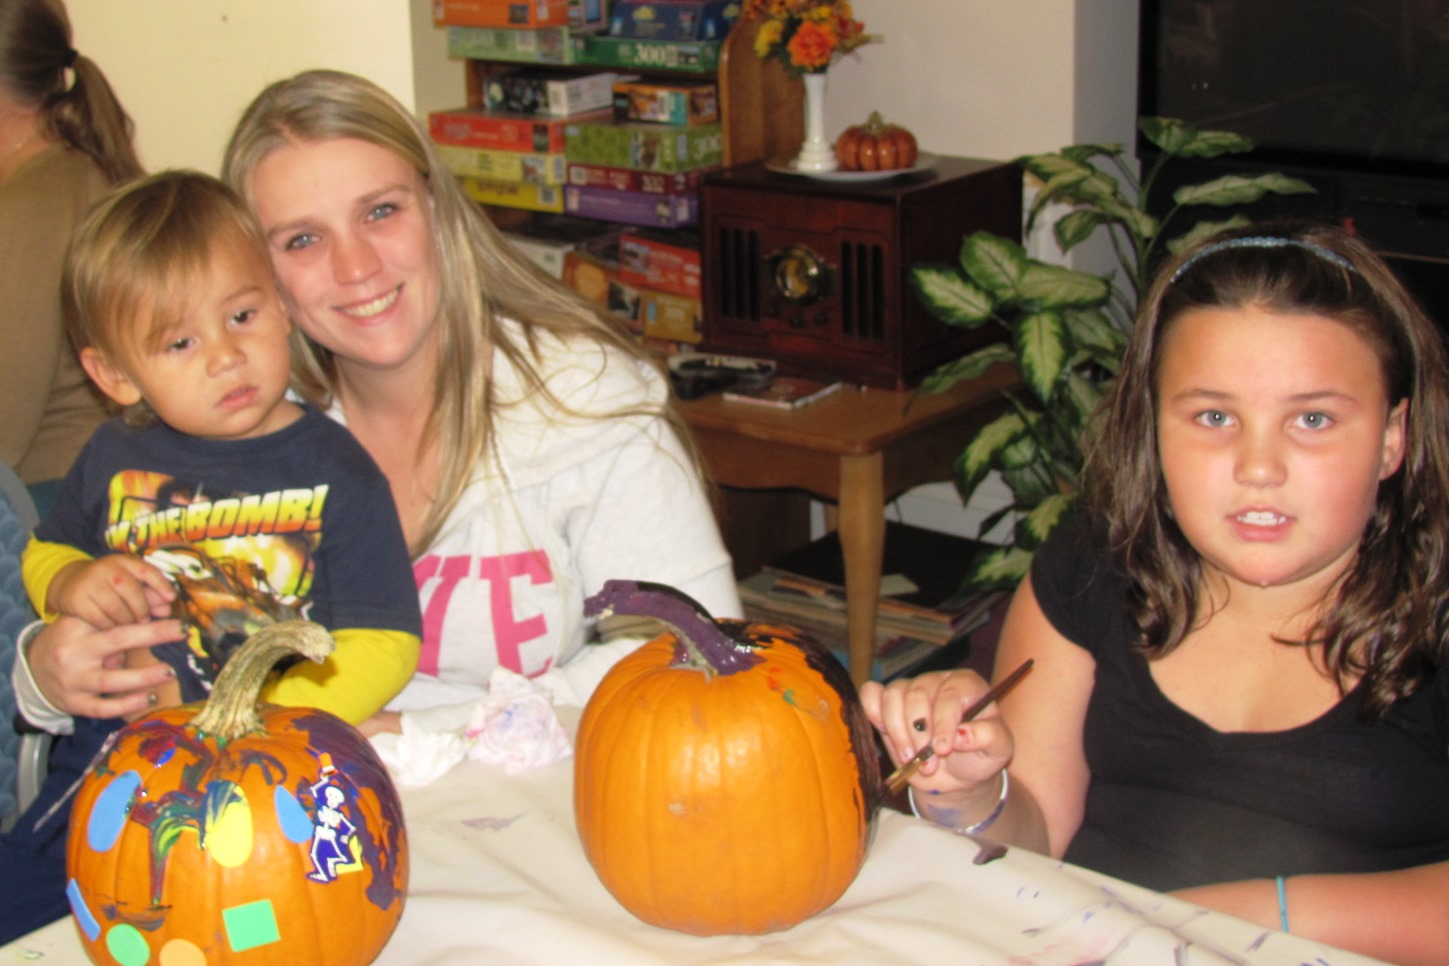 Family_photo_with_pumpkins.jpg